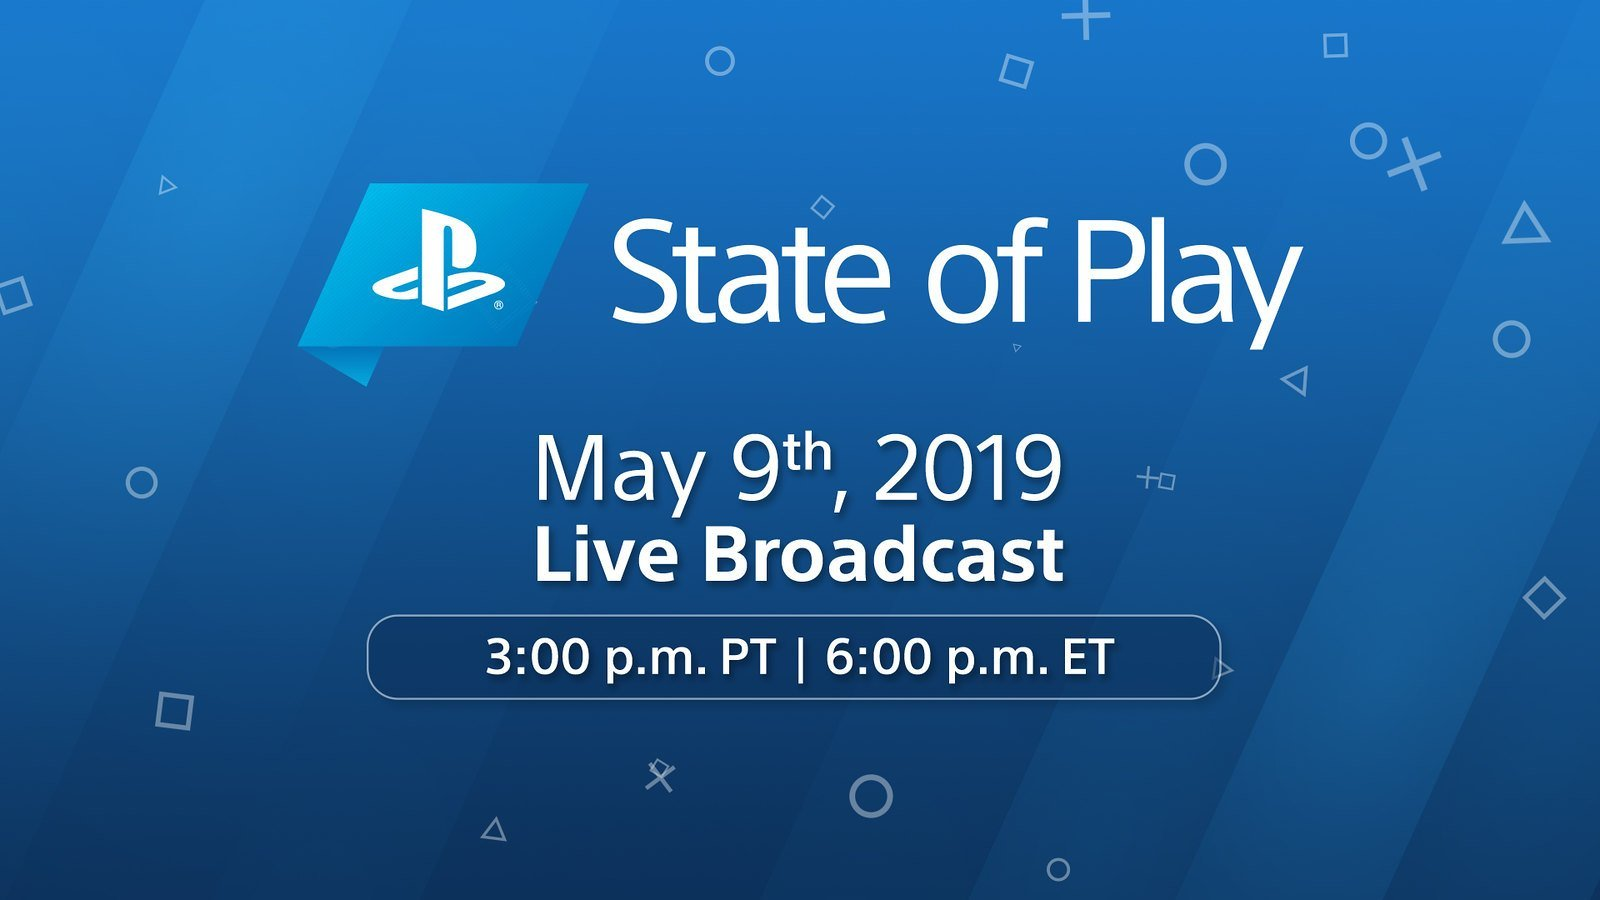 PlayStation State of Play Coming On May 9 With MediEvil Remake Showcase